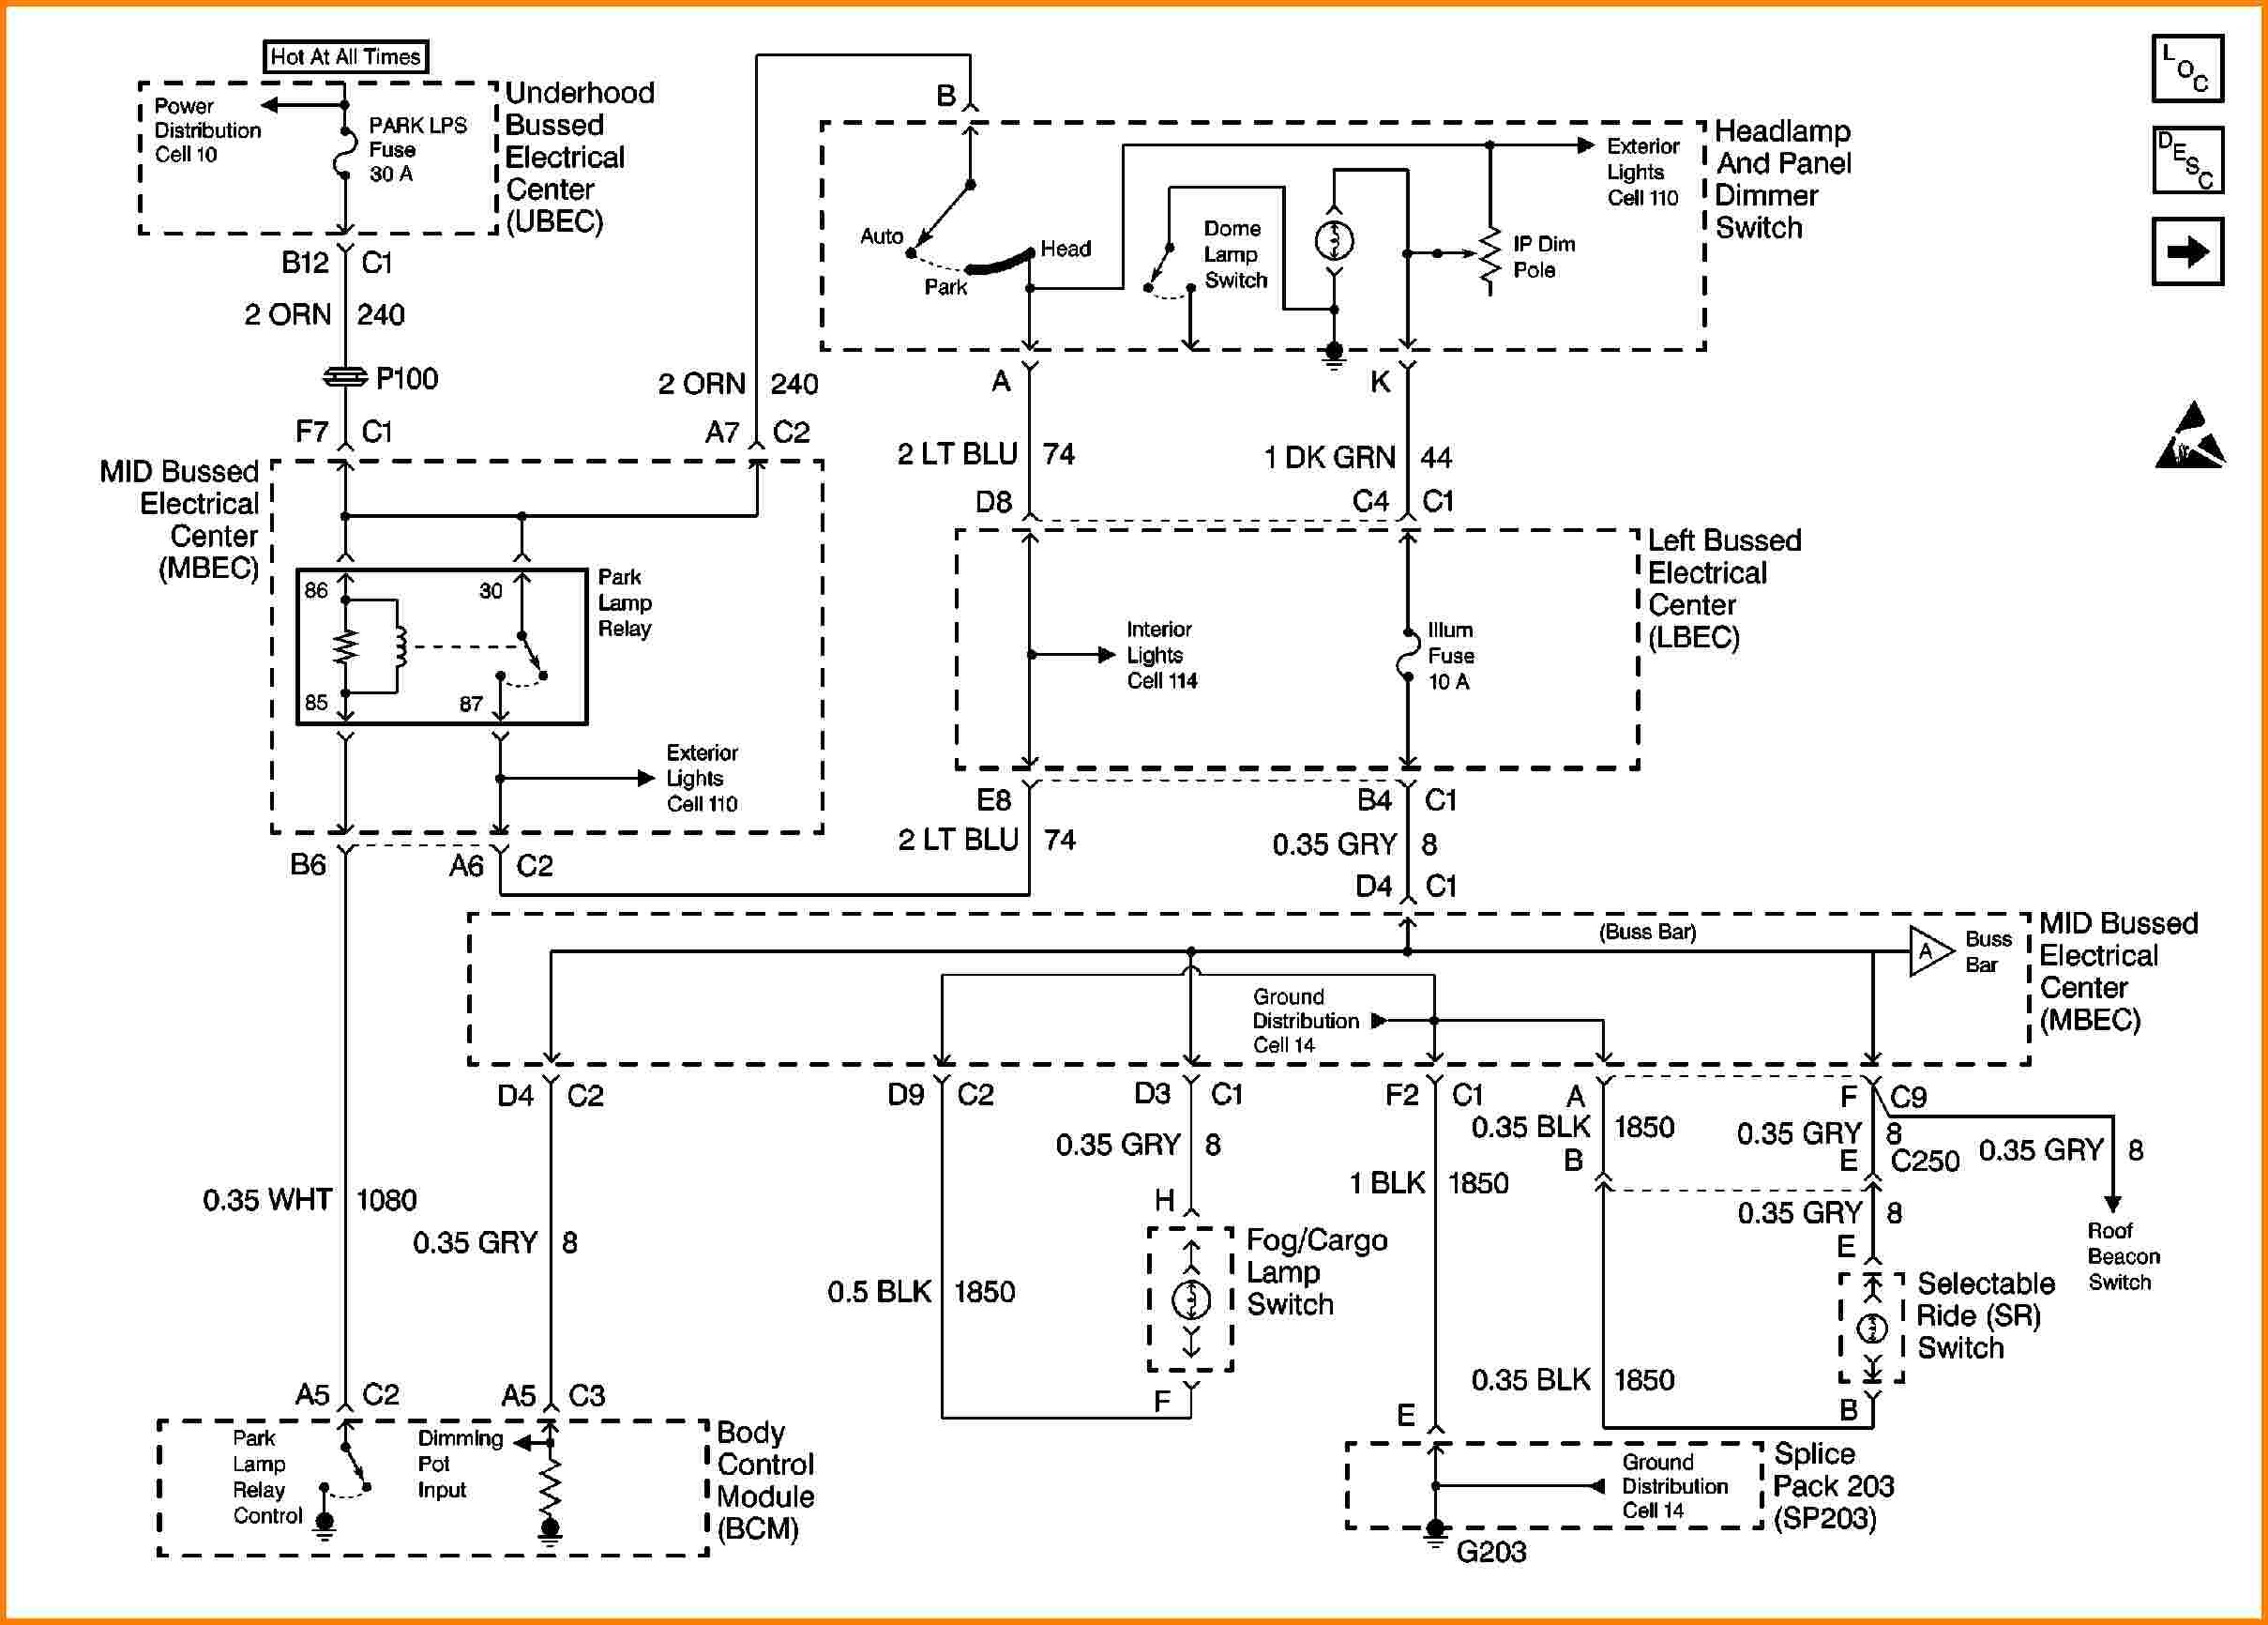 Chevy Taillight Wiring Diagram 2009. tail light wiring diagram for 2001 chevy  impala. 2000 chevy s10 tail light wiring diagram pictures to pin. tail  light wiring diagram the 1947 present chevrolet. chevy2002-acura-tl-radio.info